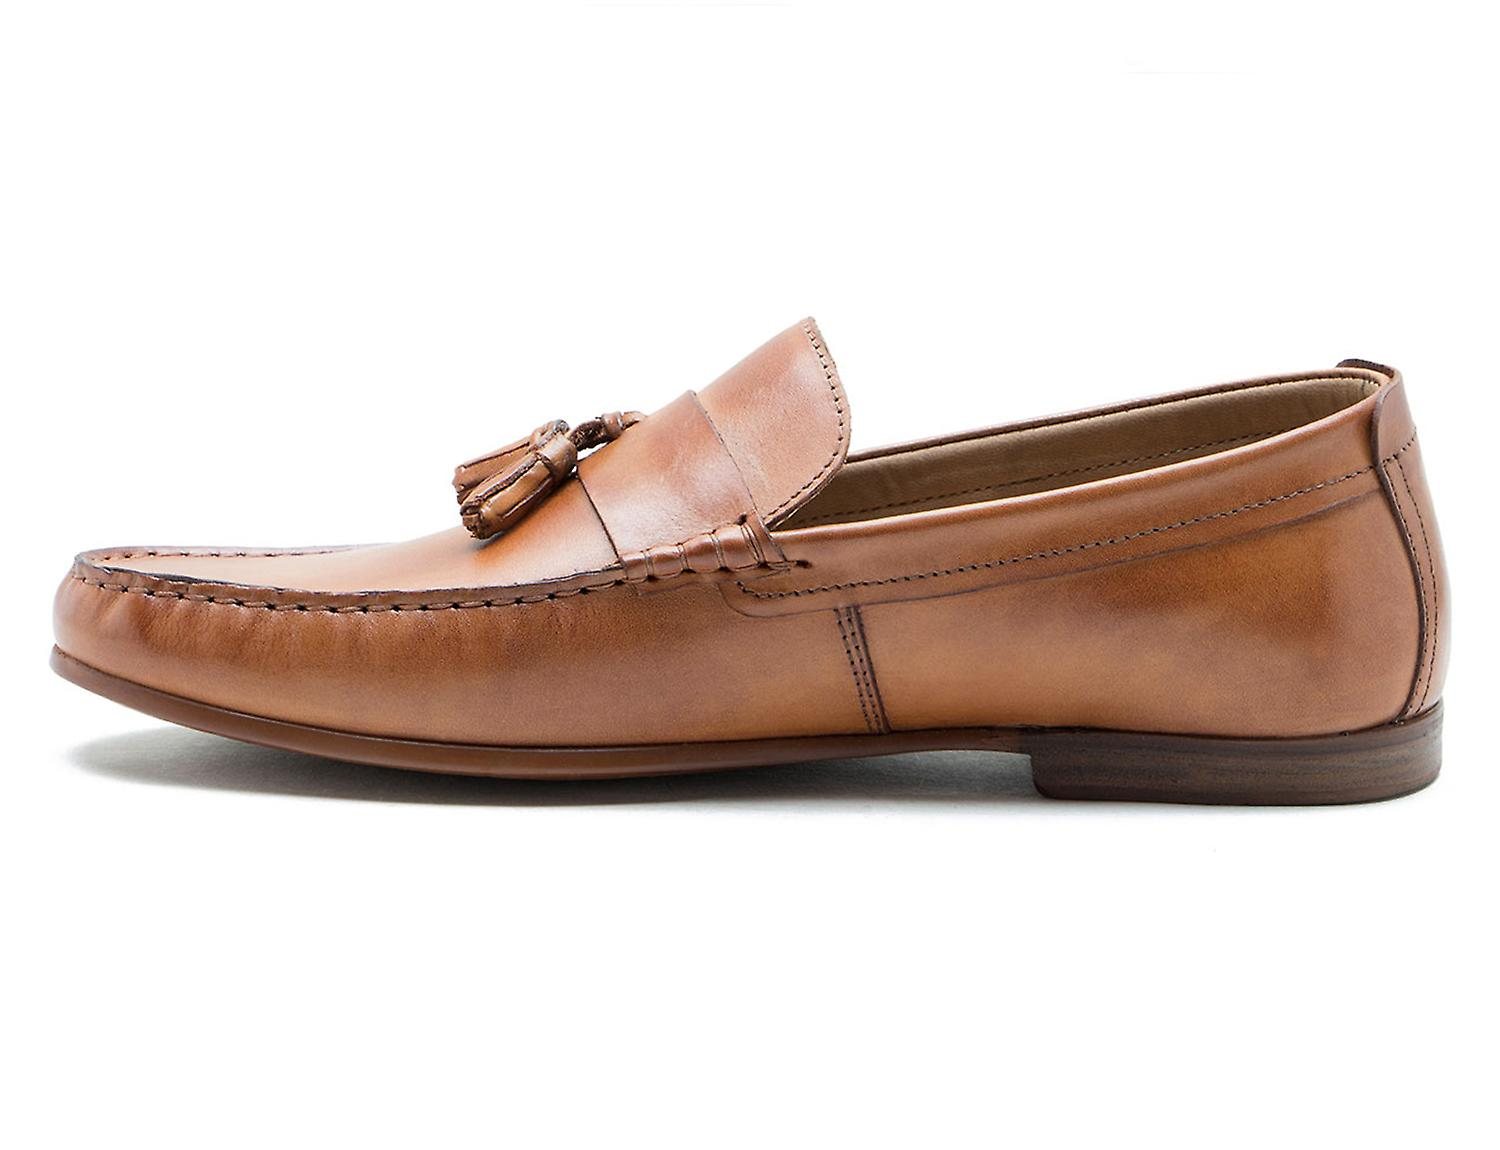 Red Tape Elvaston Tan Leather Loafers Driving Shoes